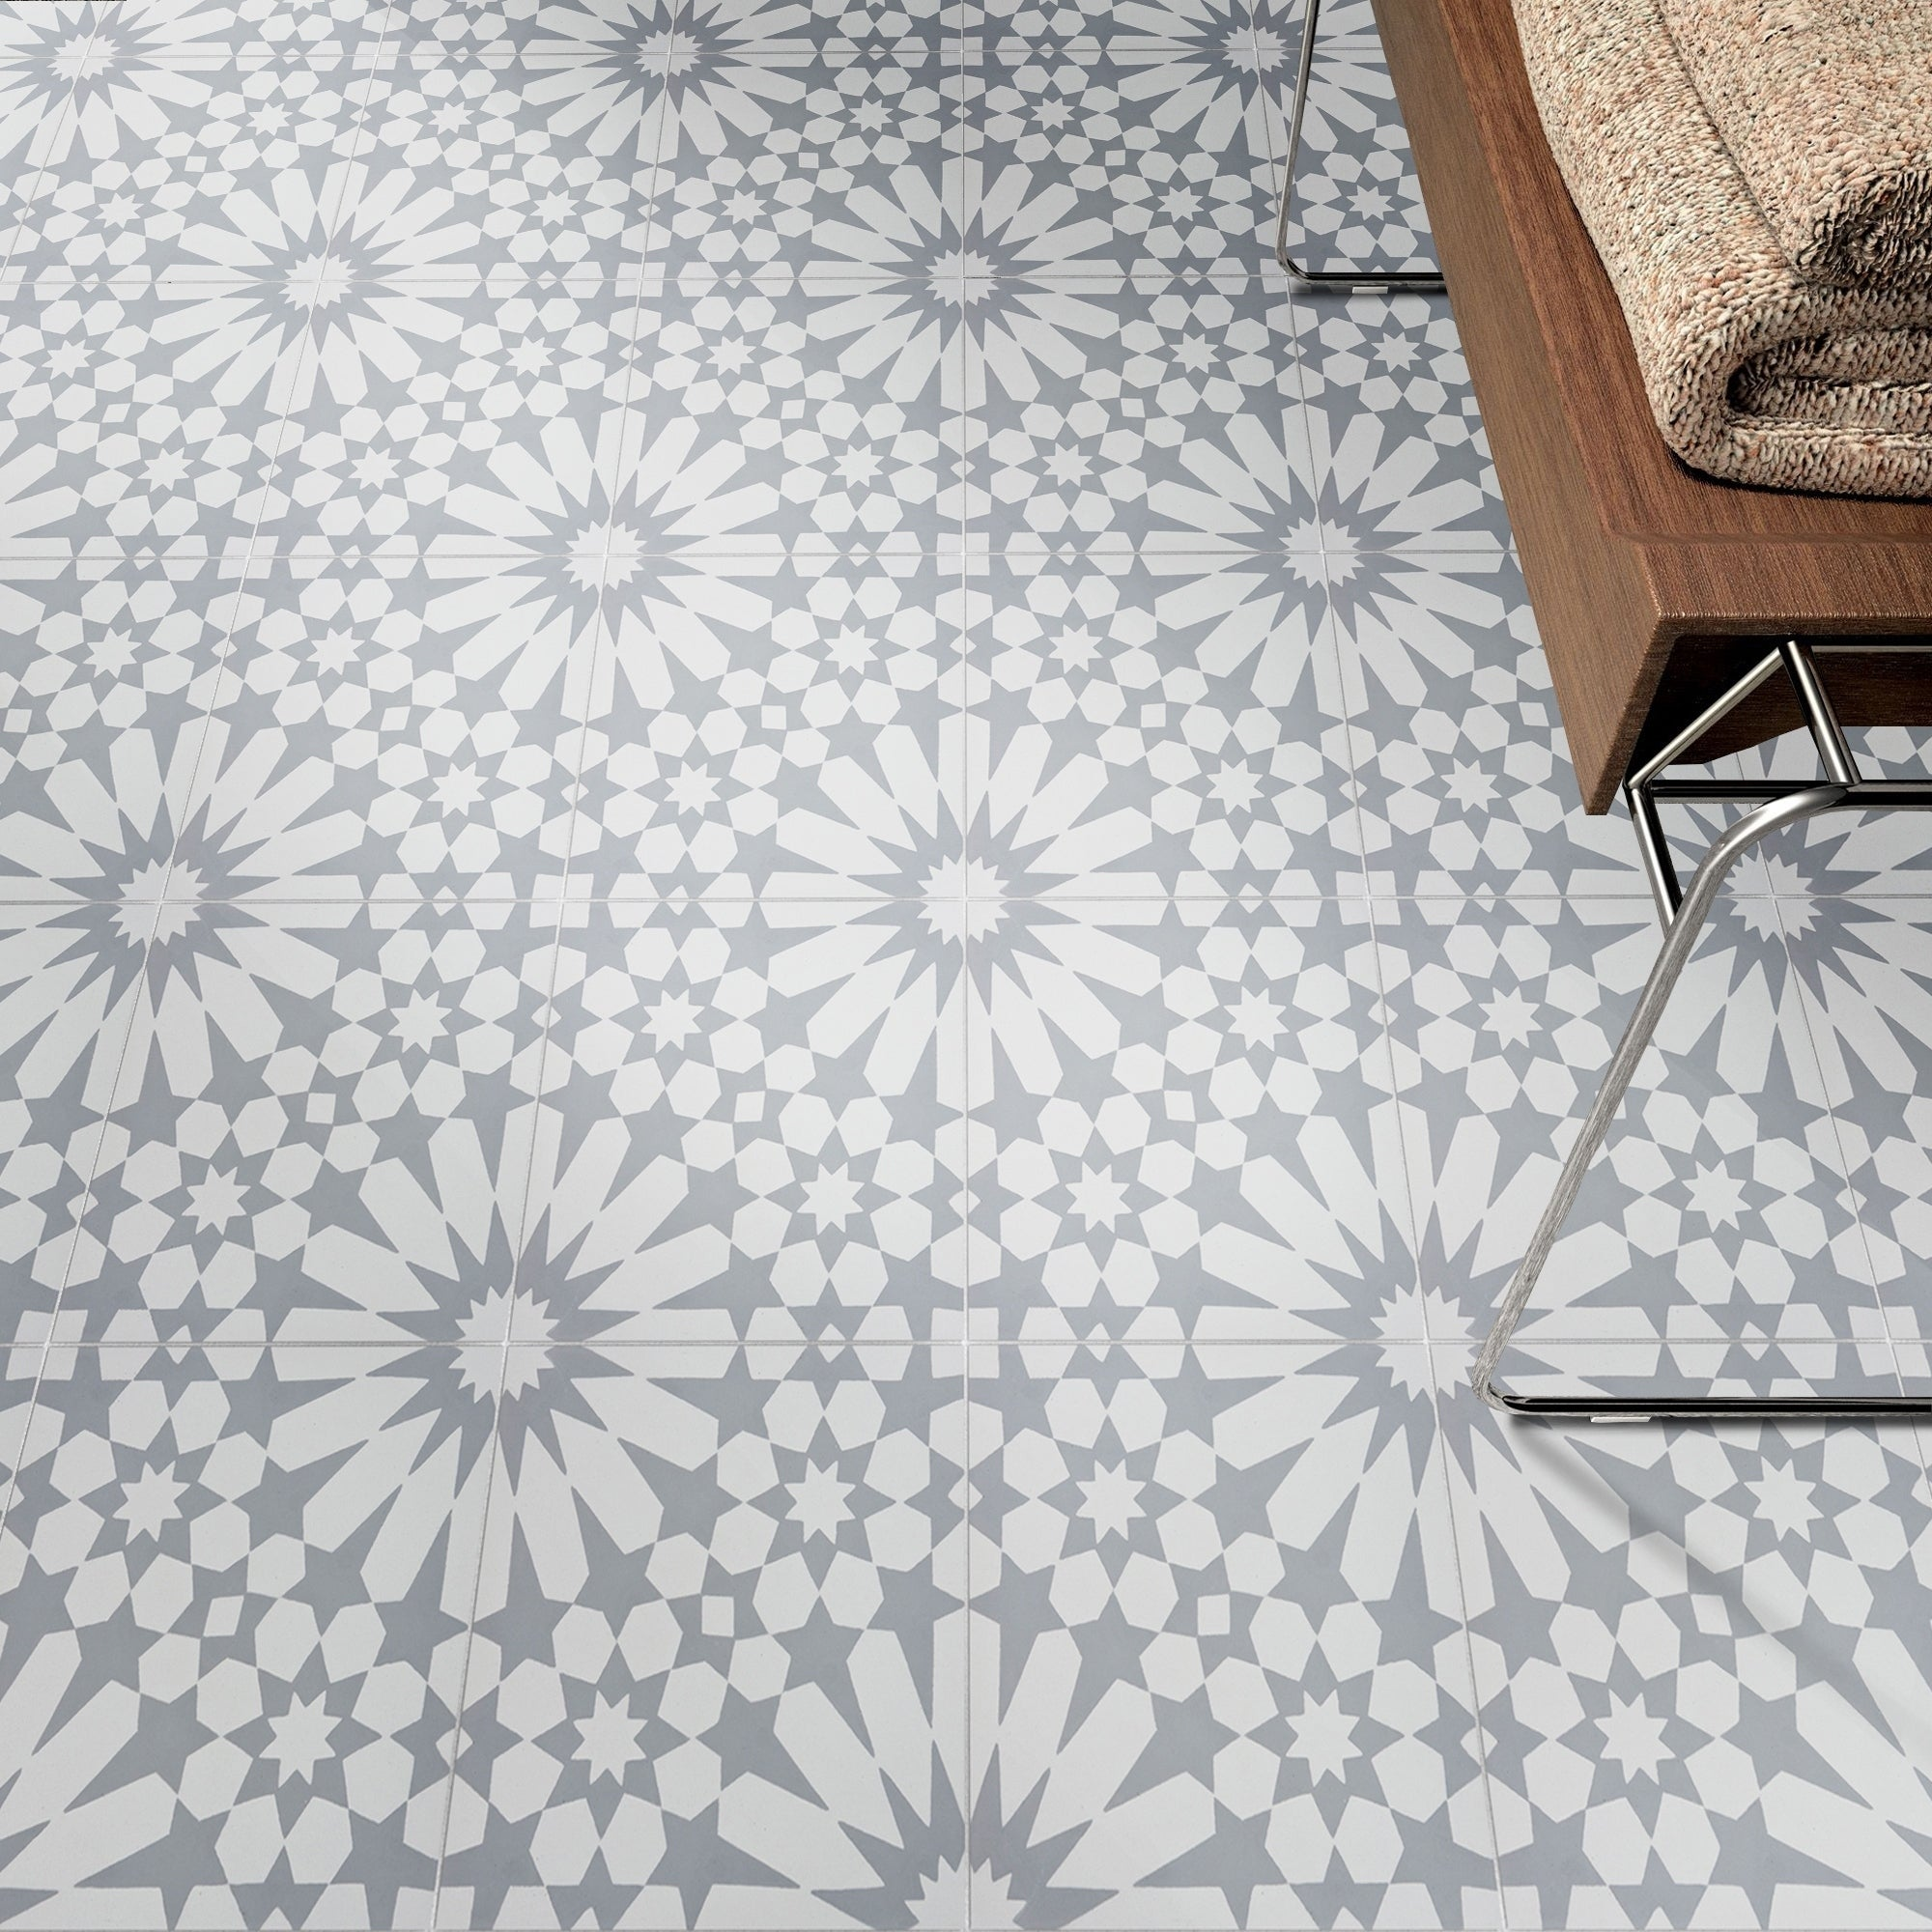 Handmade Agdal In Grey And White Tile